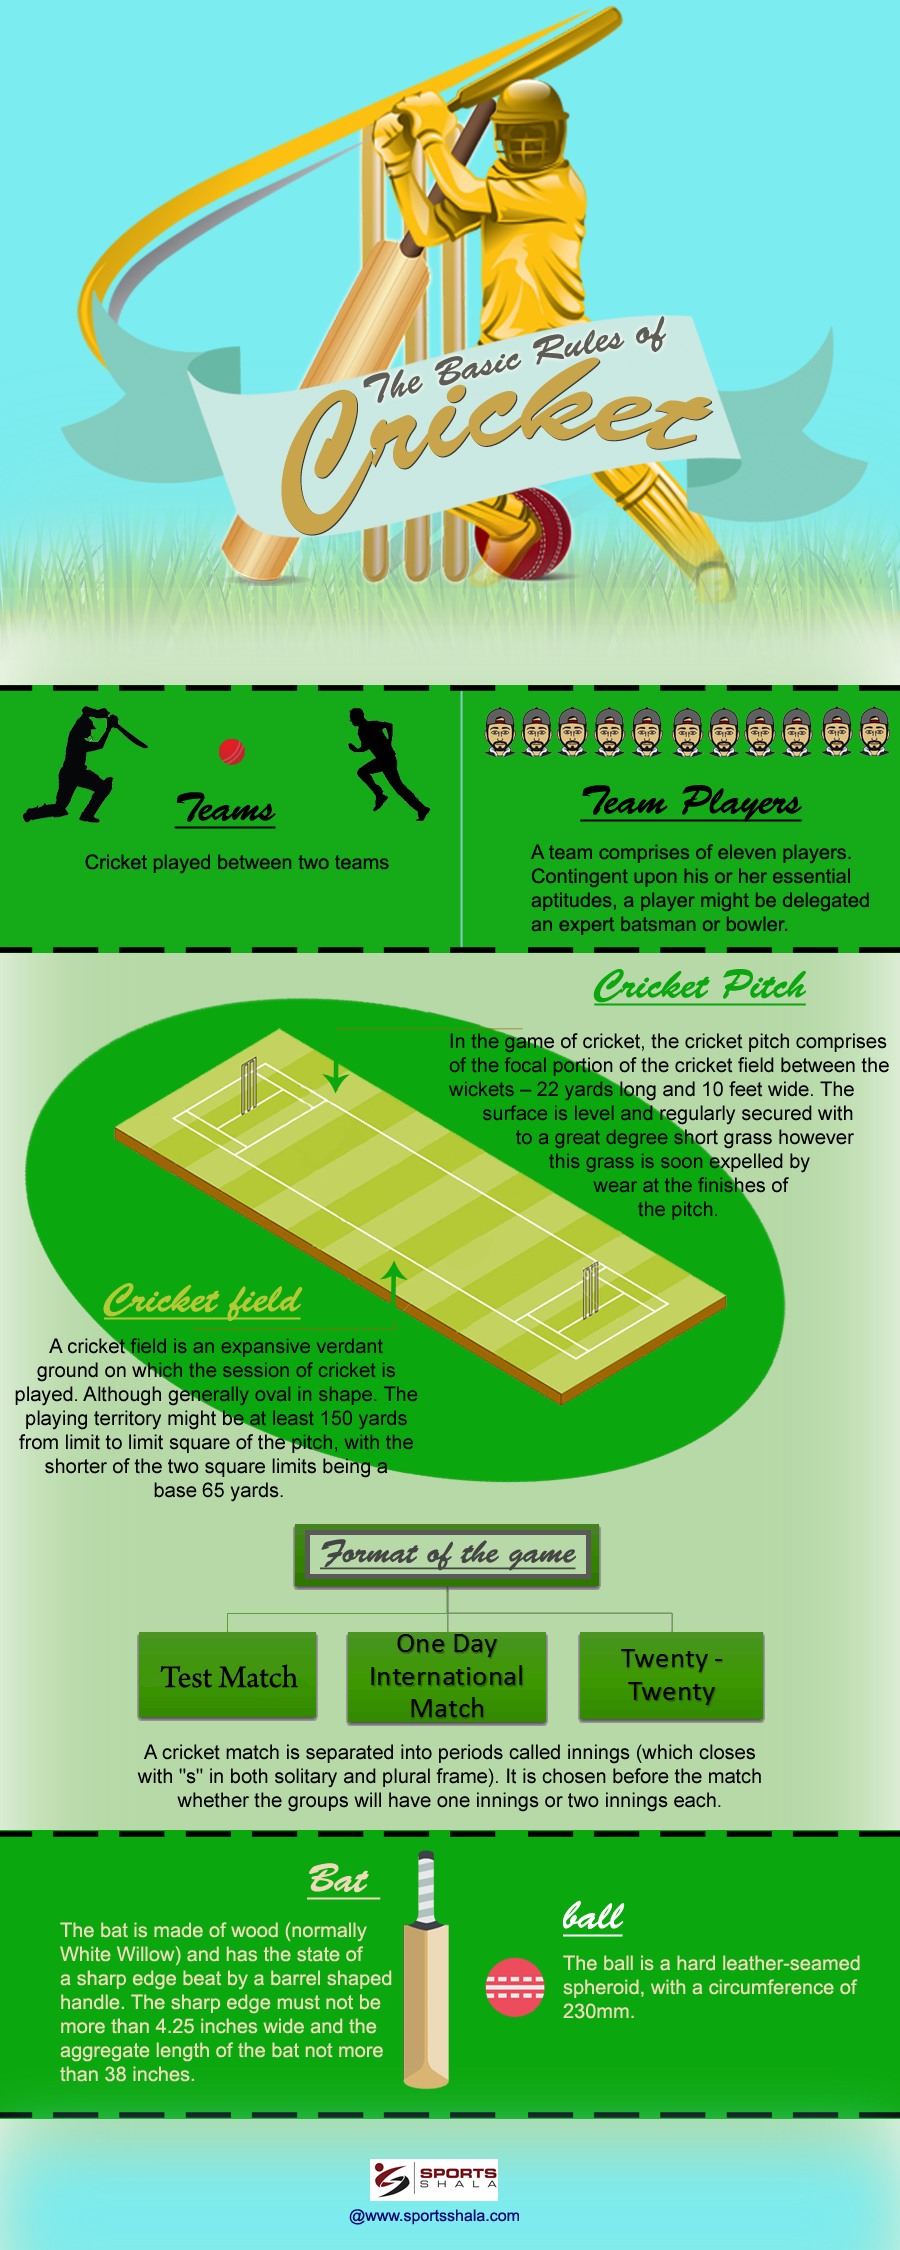 The Basic Rules Of Cricket Teams Cricket Played Between Two